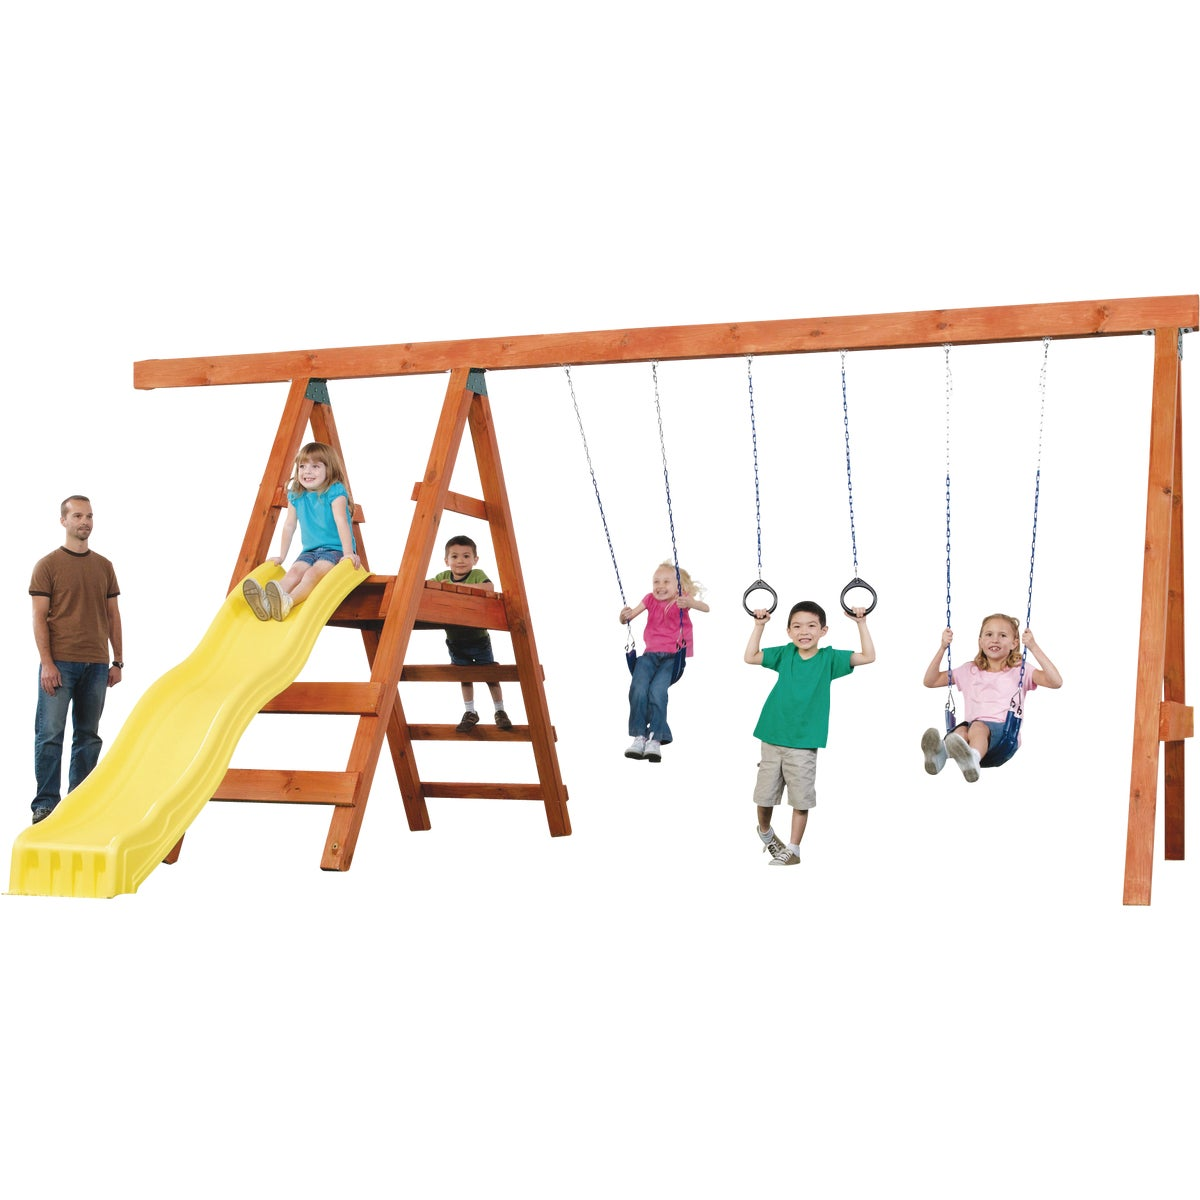 PIONEER SWING SET KIT